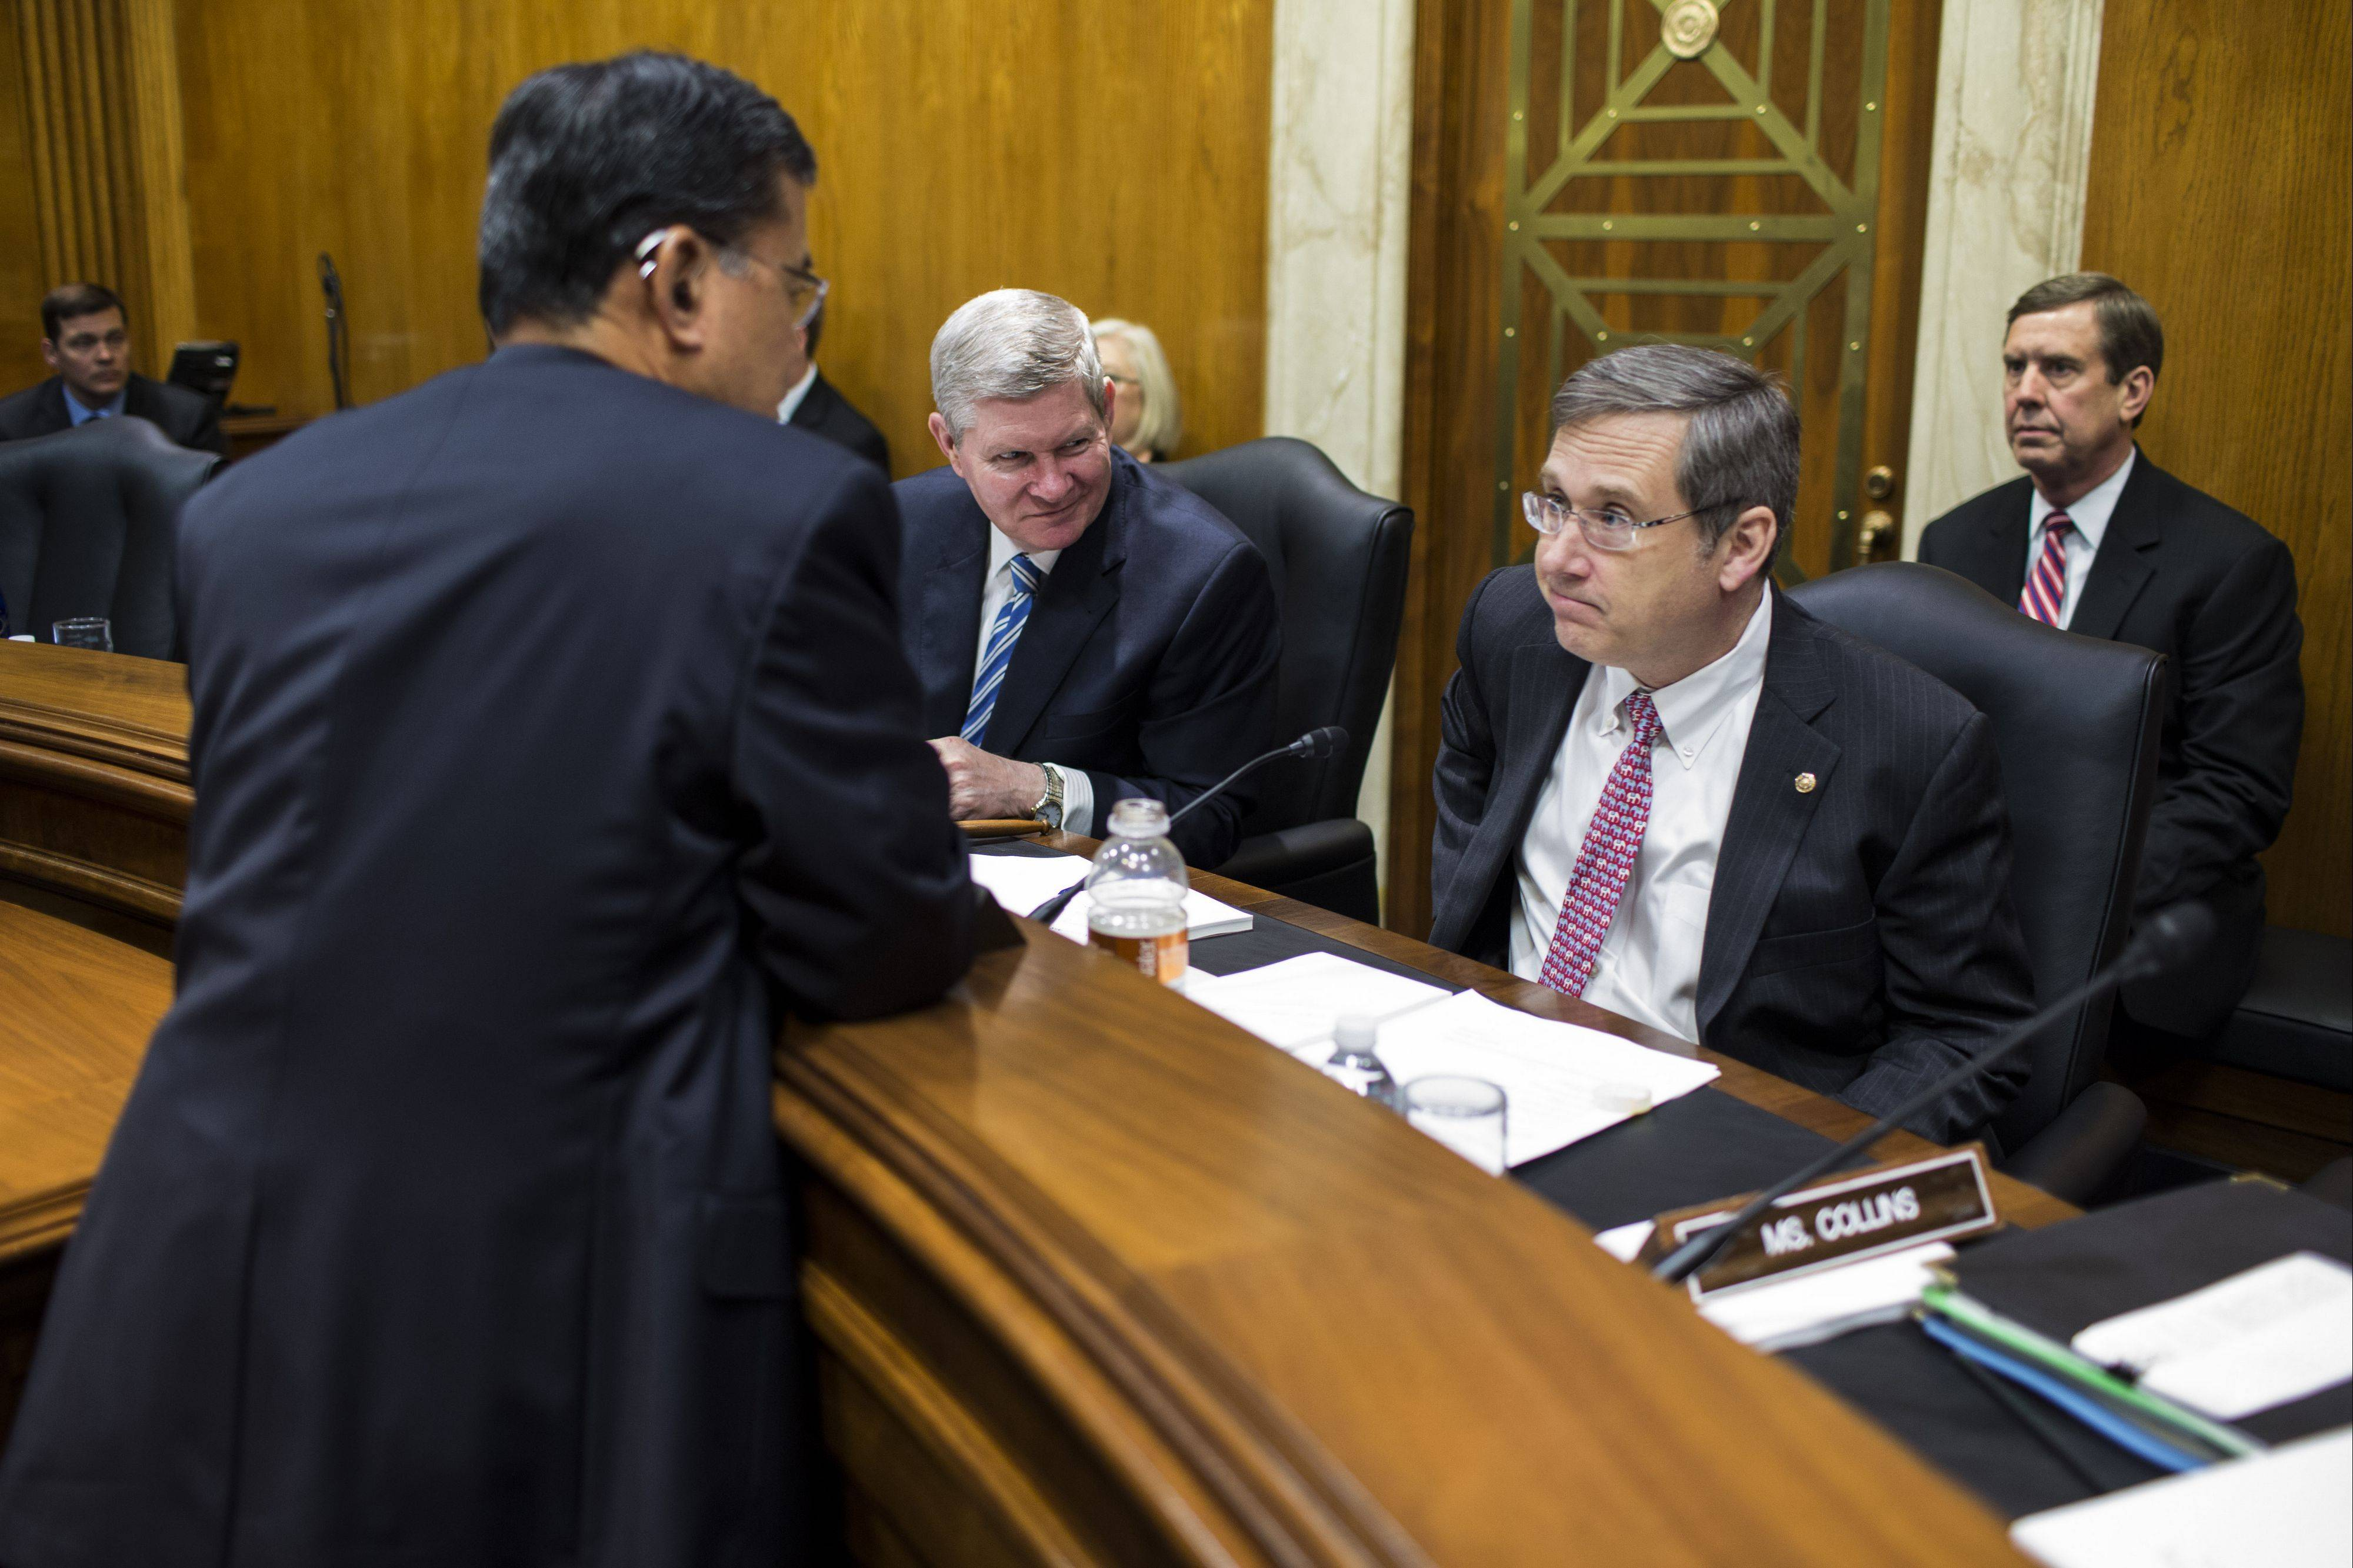 U.S. Sen. Mark Kirk, a Highland Park Republican at right, and colleague Tim Johnson, a South Dakota Democrat, center, speak with Secretary of Veterans Affairs Eric Shinseki after a Military Construction, Veteran Affairs, and Related Agencies Subcommittee hearing in Washington, D.C. Both Kirk and Johnson returned to the Senate after having strokes.